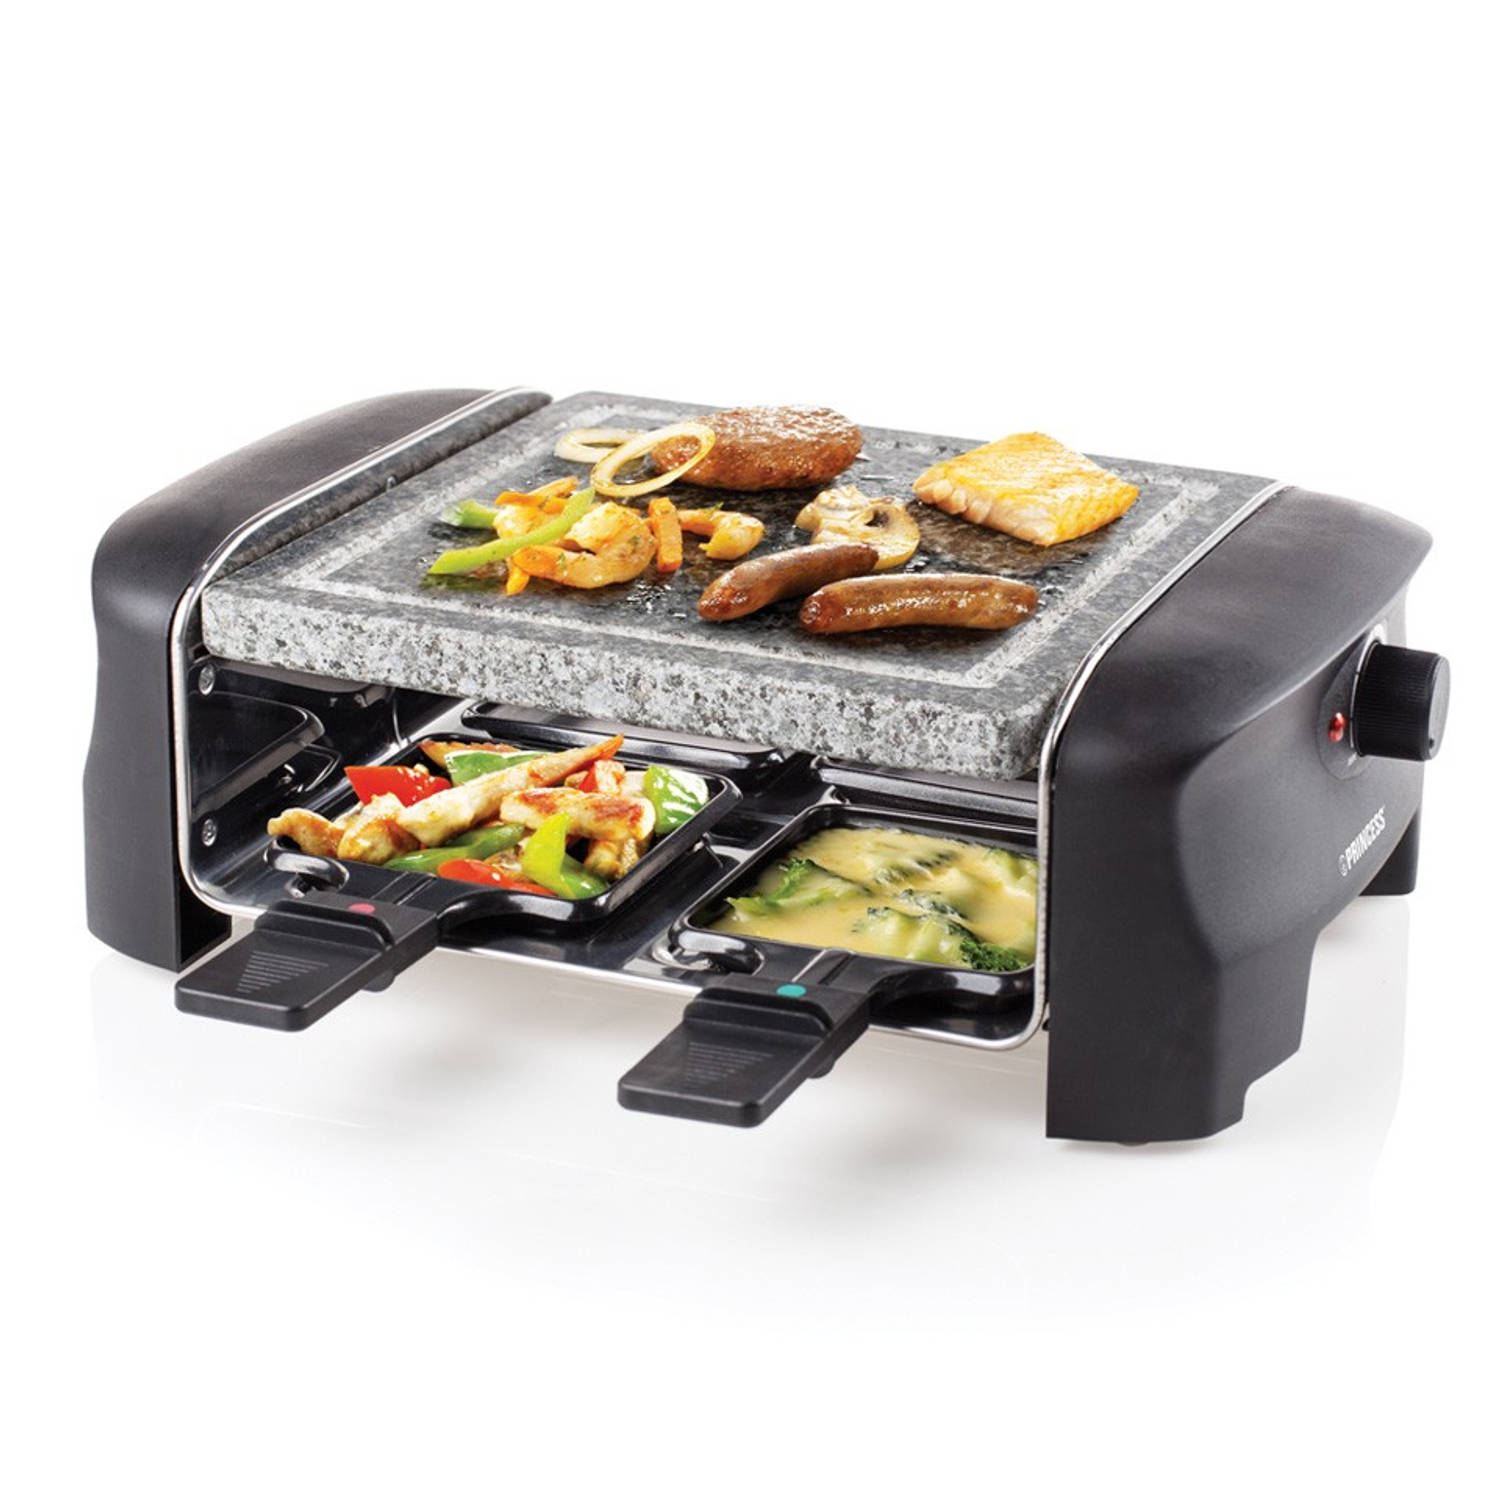 Princess Raclette 4 Stone Grill Party steengrill 162810